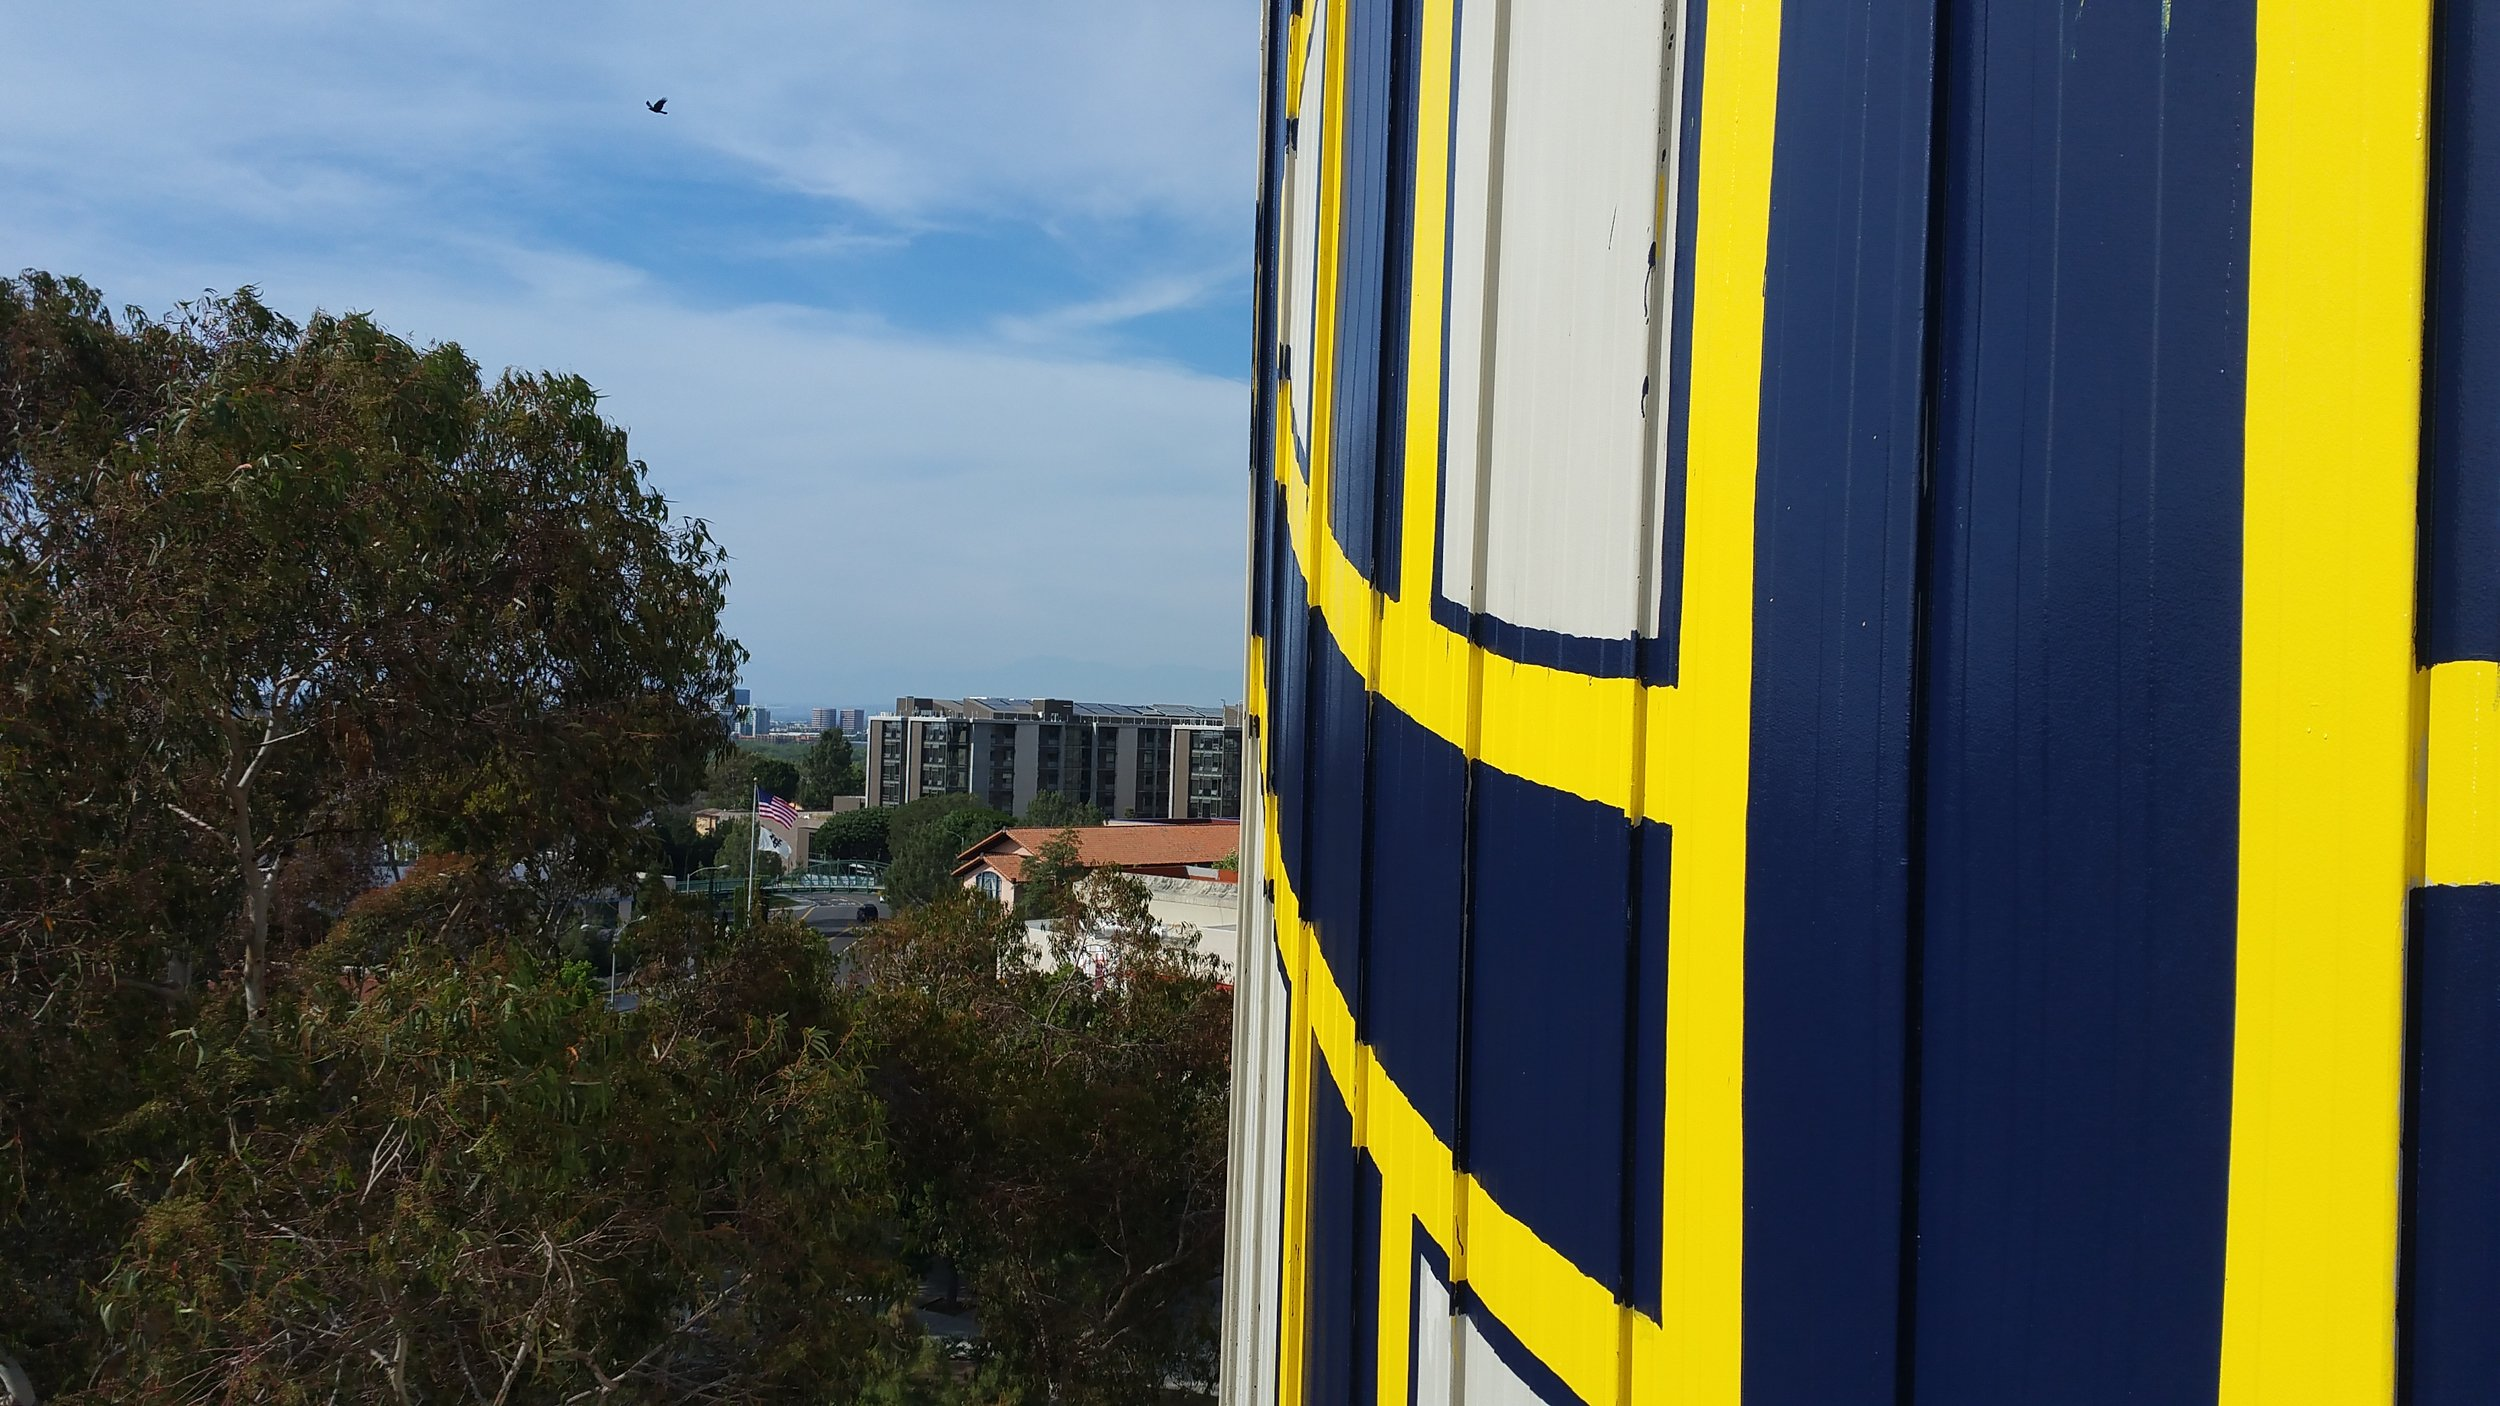 UC IRVINE TANK GRAPHIC VIEW ACROSS CAMPUS